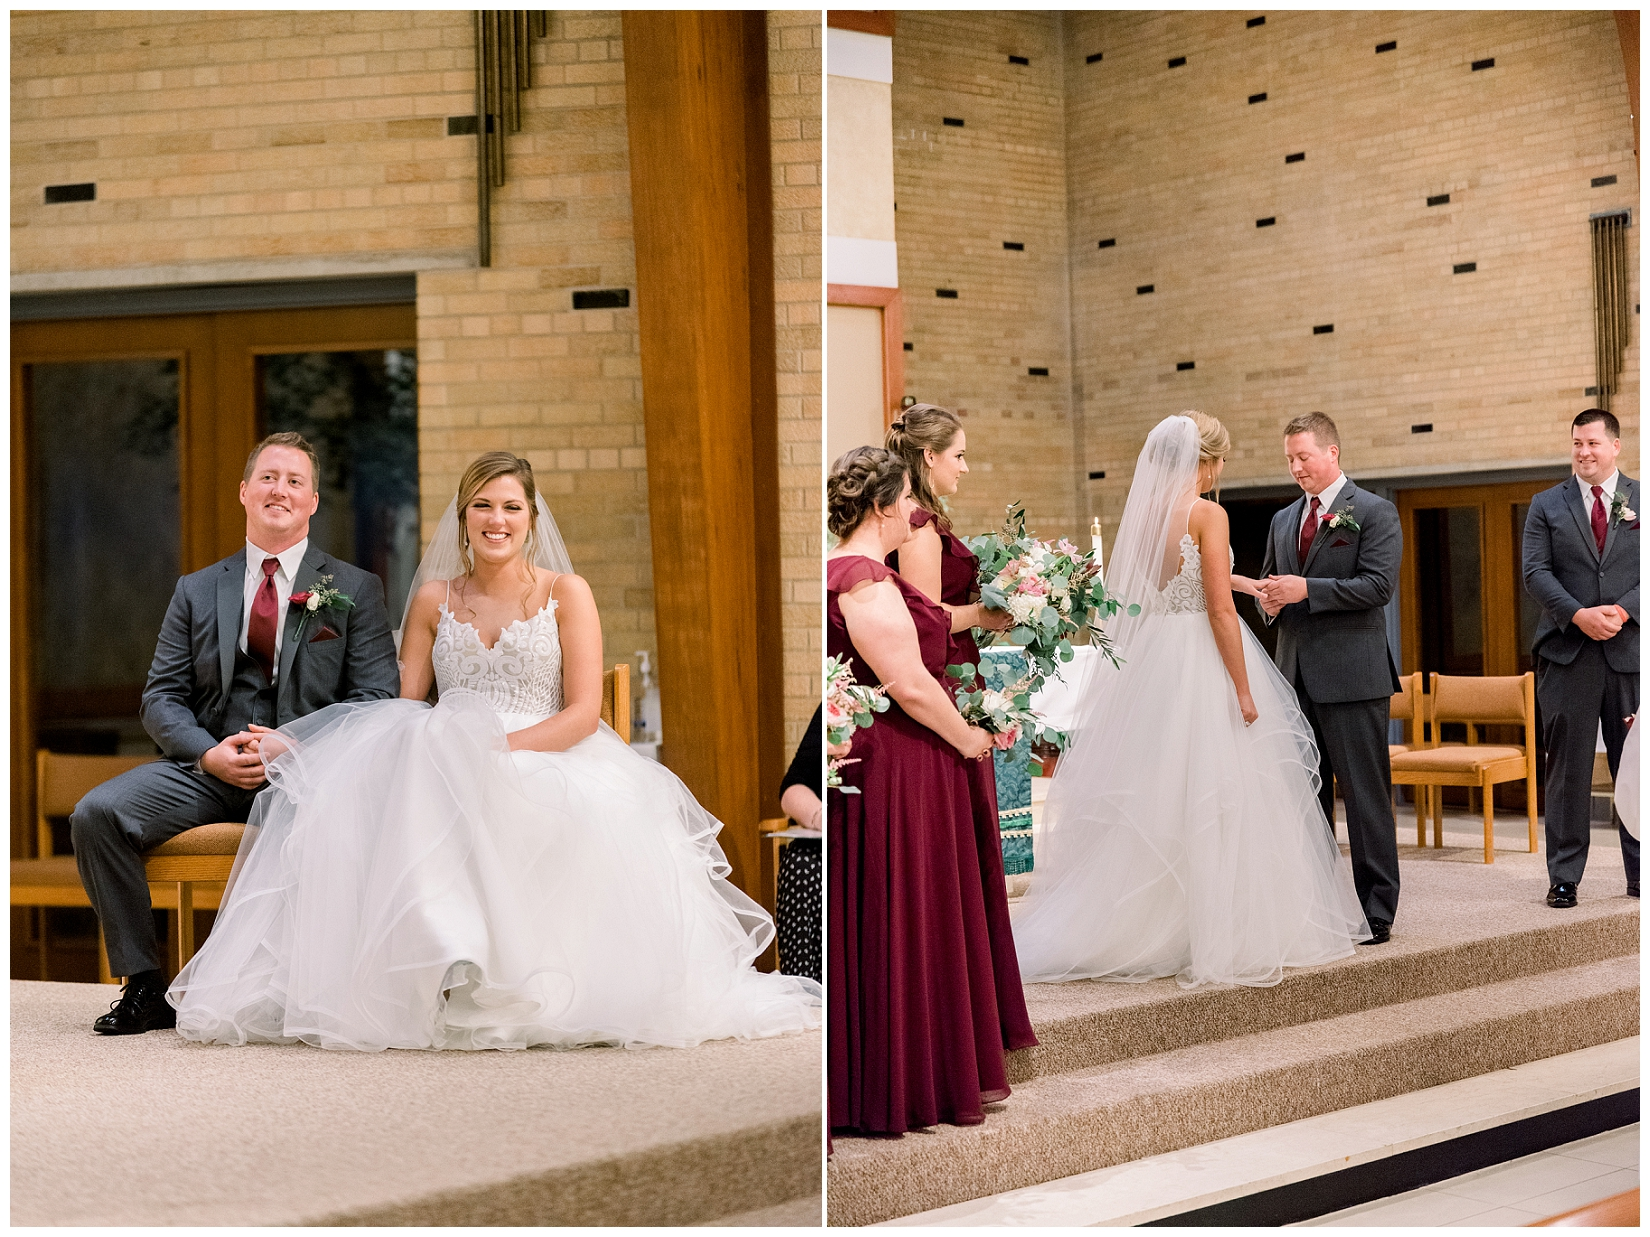 cat-alkire-wedding-photographer-indiana-chicago-indianapolis-fort-wayne_0662.jpg